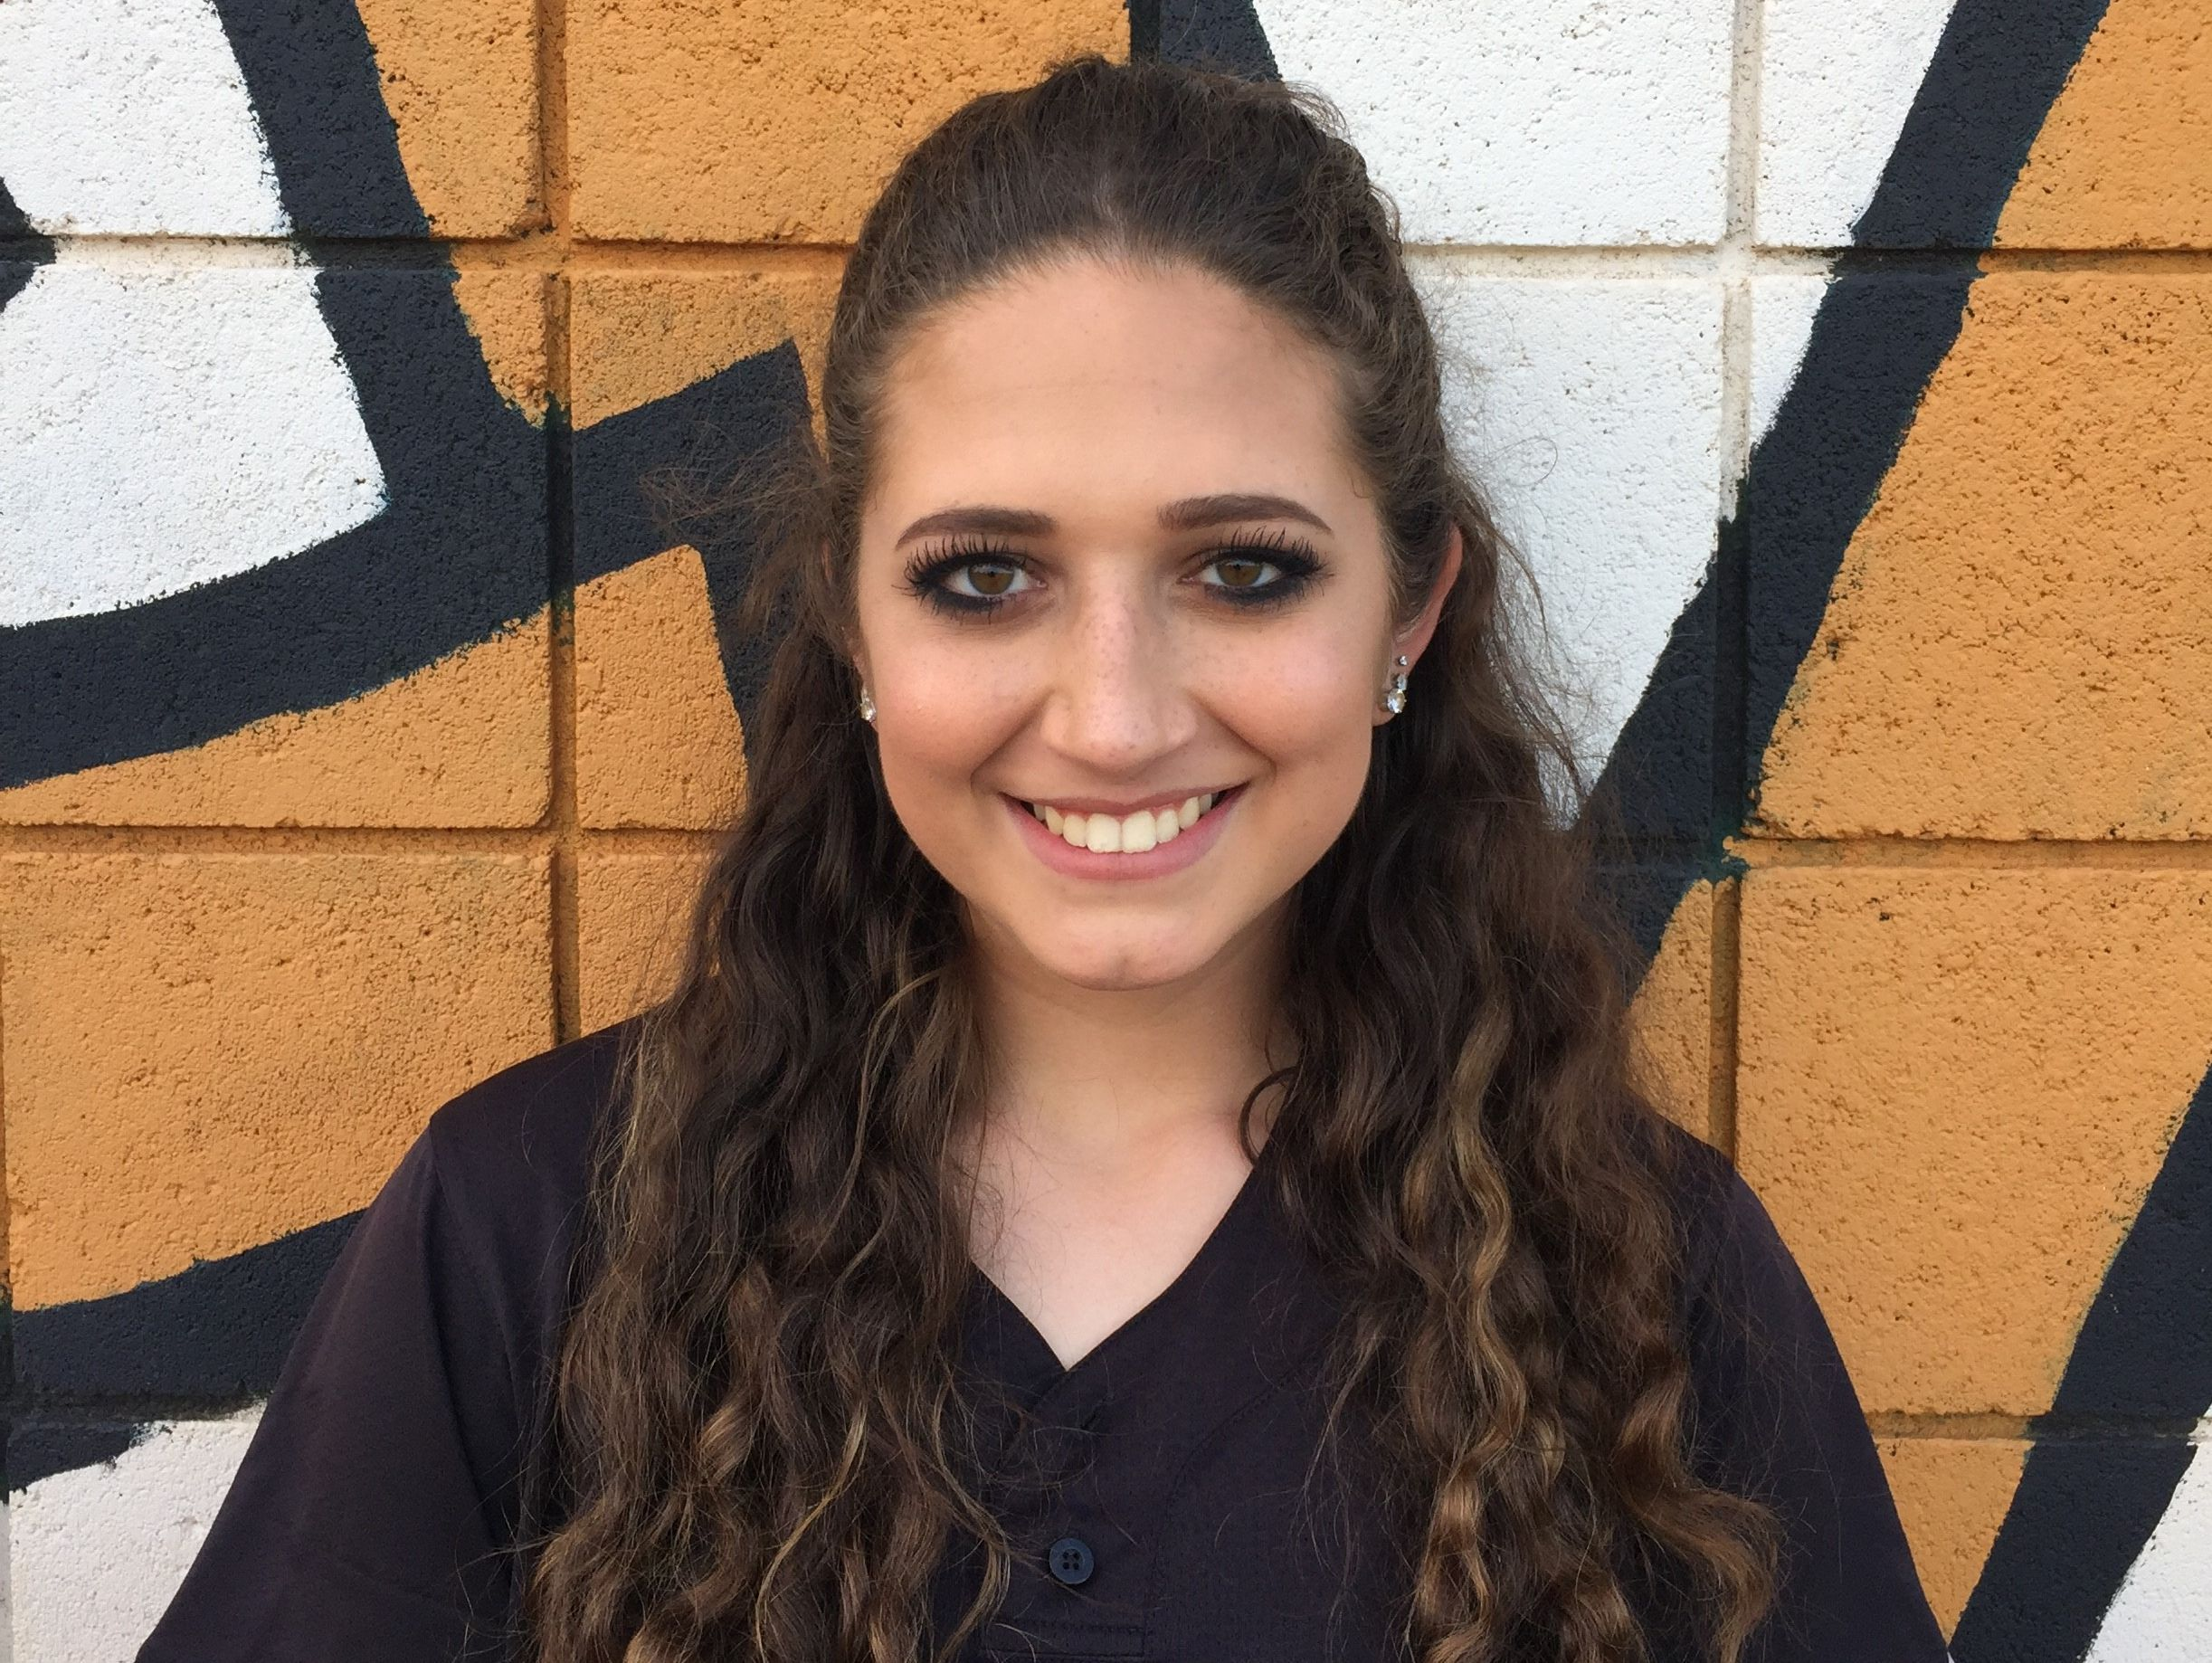 Riley Herman, from Gilbert Campo Verde, is the azcentral.com Sports Awards Female Athlete of the Week, presented by La-Z-Boy Furniture Galleries, from March 2-9.